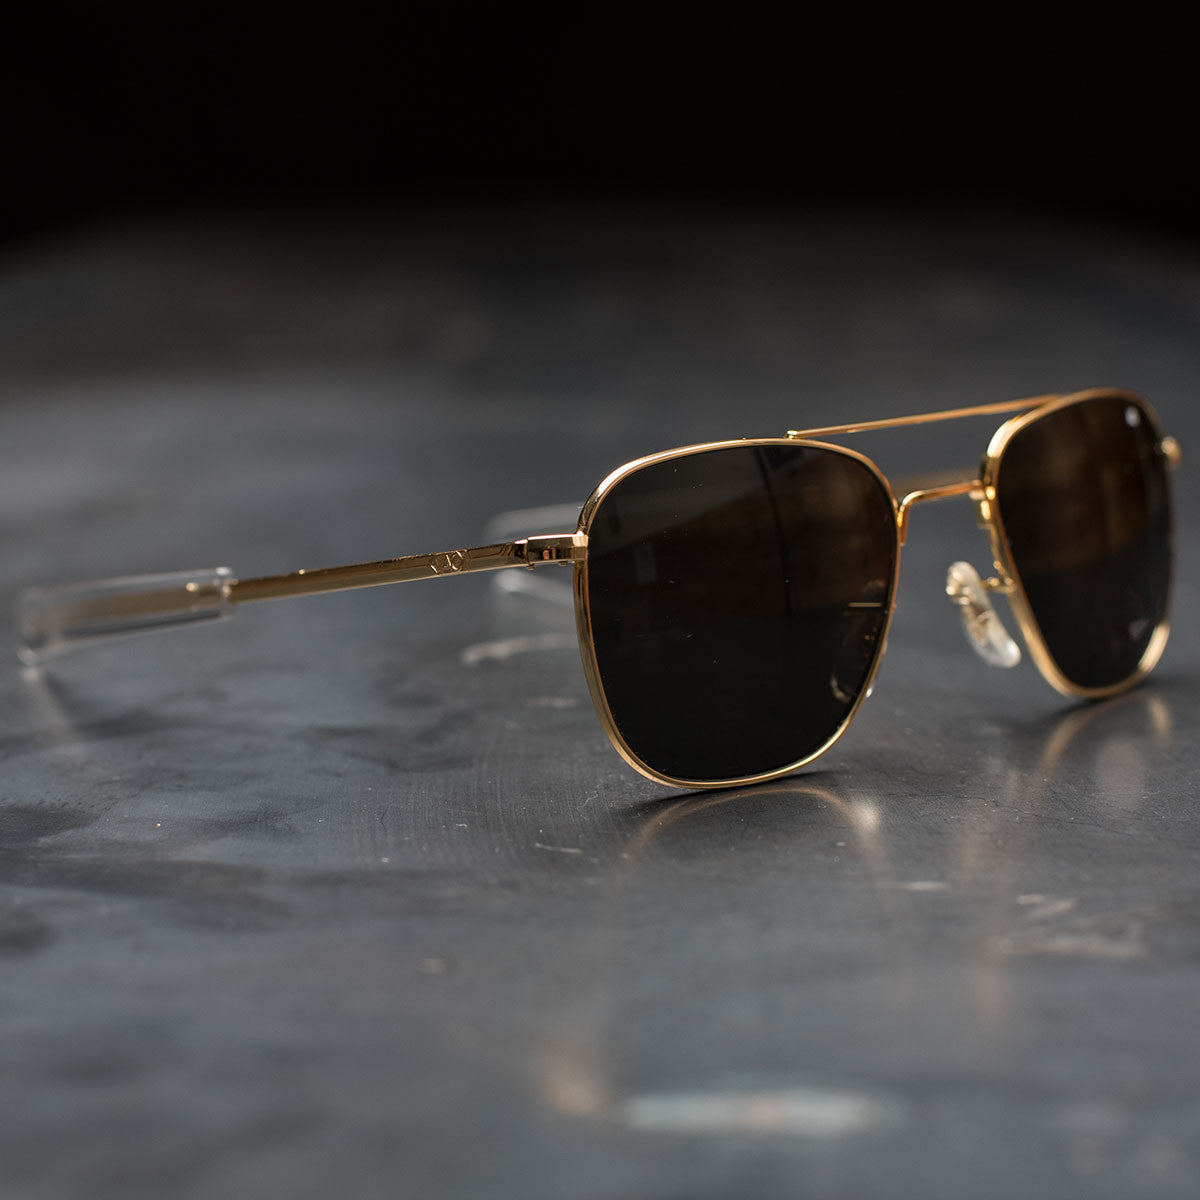 AO Original Pilot Sunglasses (Gold Frame) - Revival Cycles 5083f510f8d8